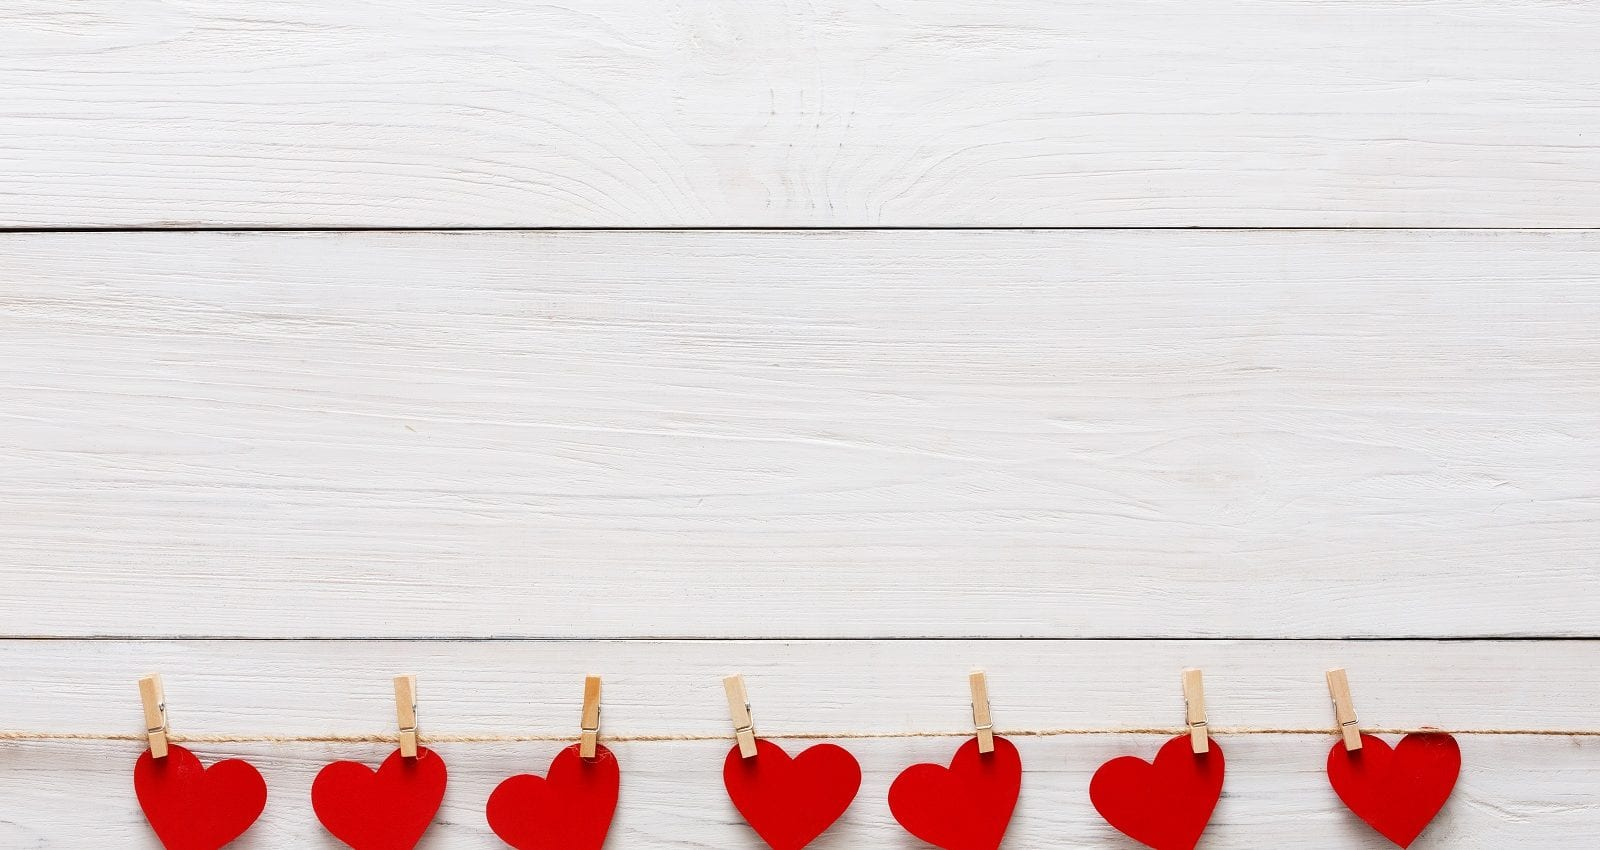 Red paper hearts row border on clothespins on white rustic wood planks